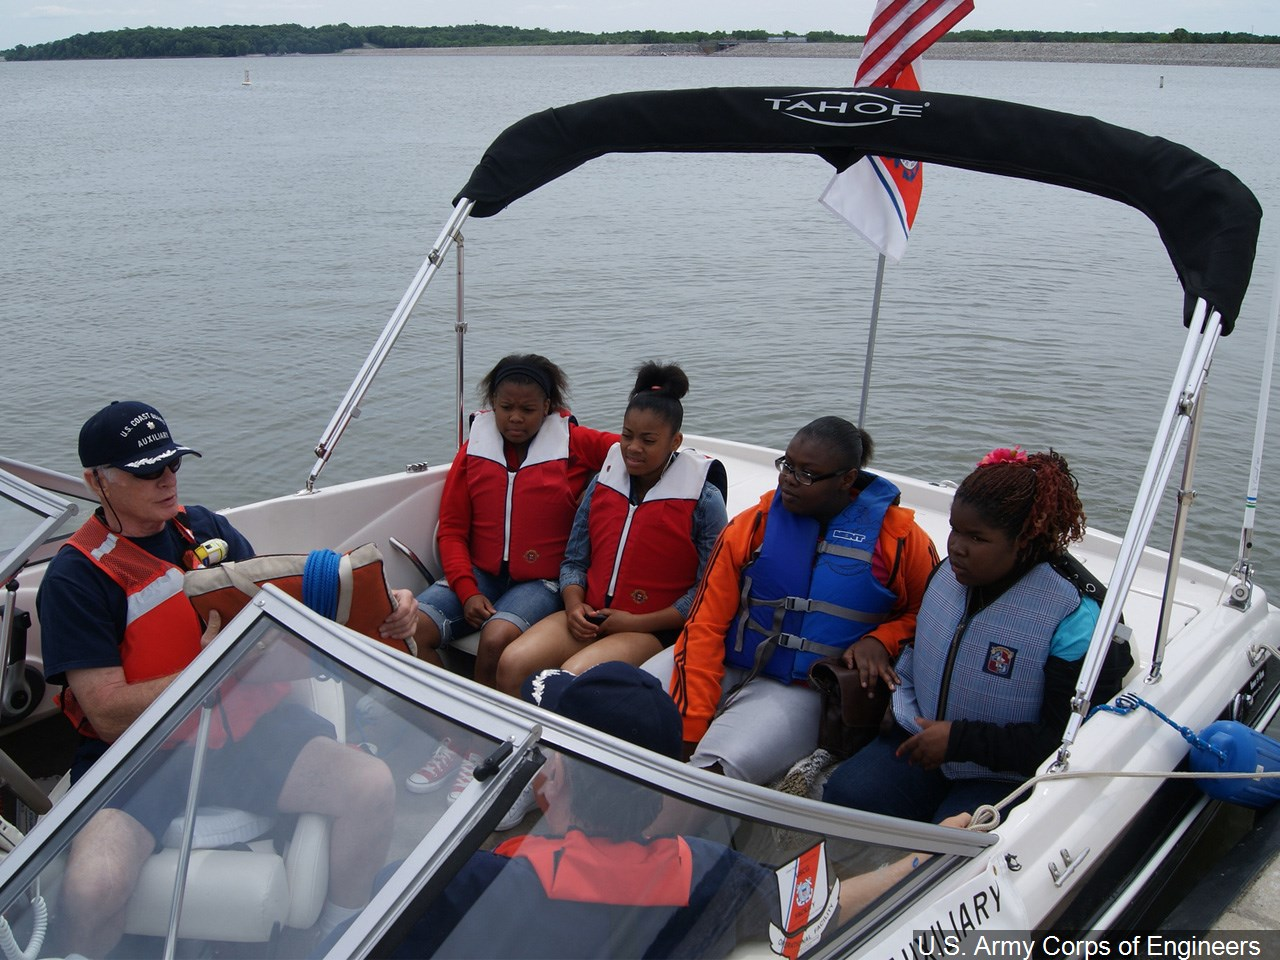 BOATING SAFETY GENERIC PIC 1_1558968323576.jpg.jpg